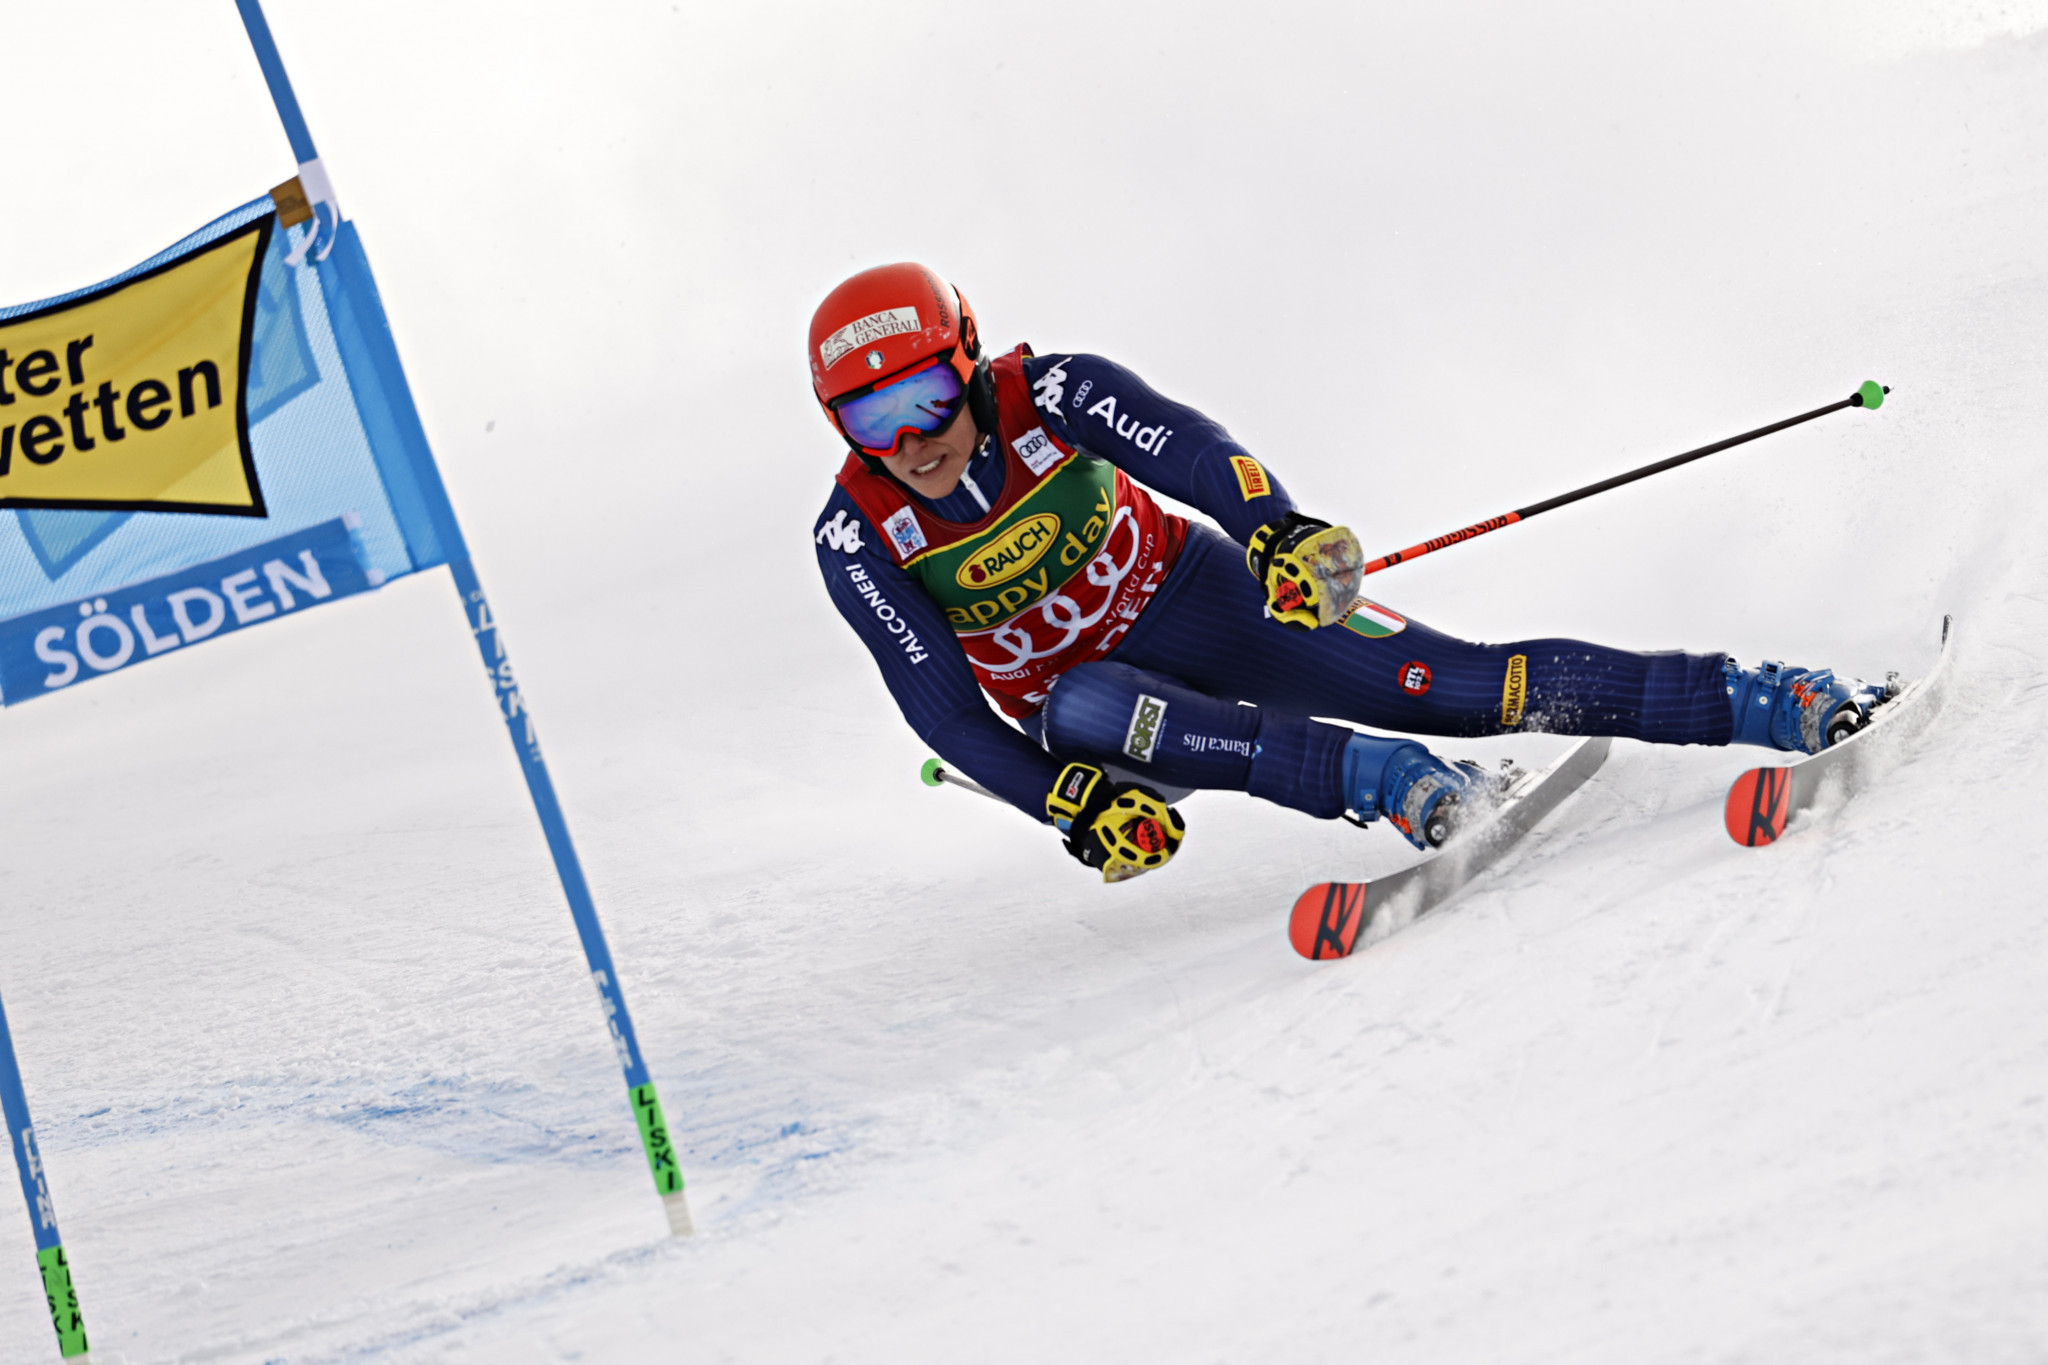 Federica Brignone of Italy was the runner-up at the FIS Alpine Ski World Cup event in Sölden ©Getty Images